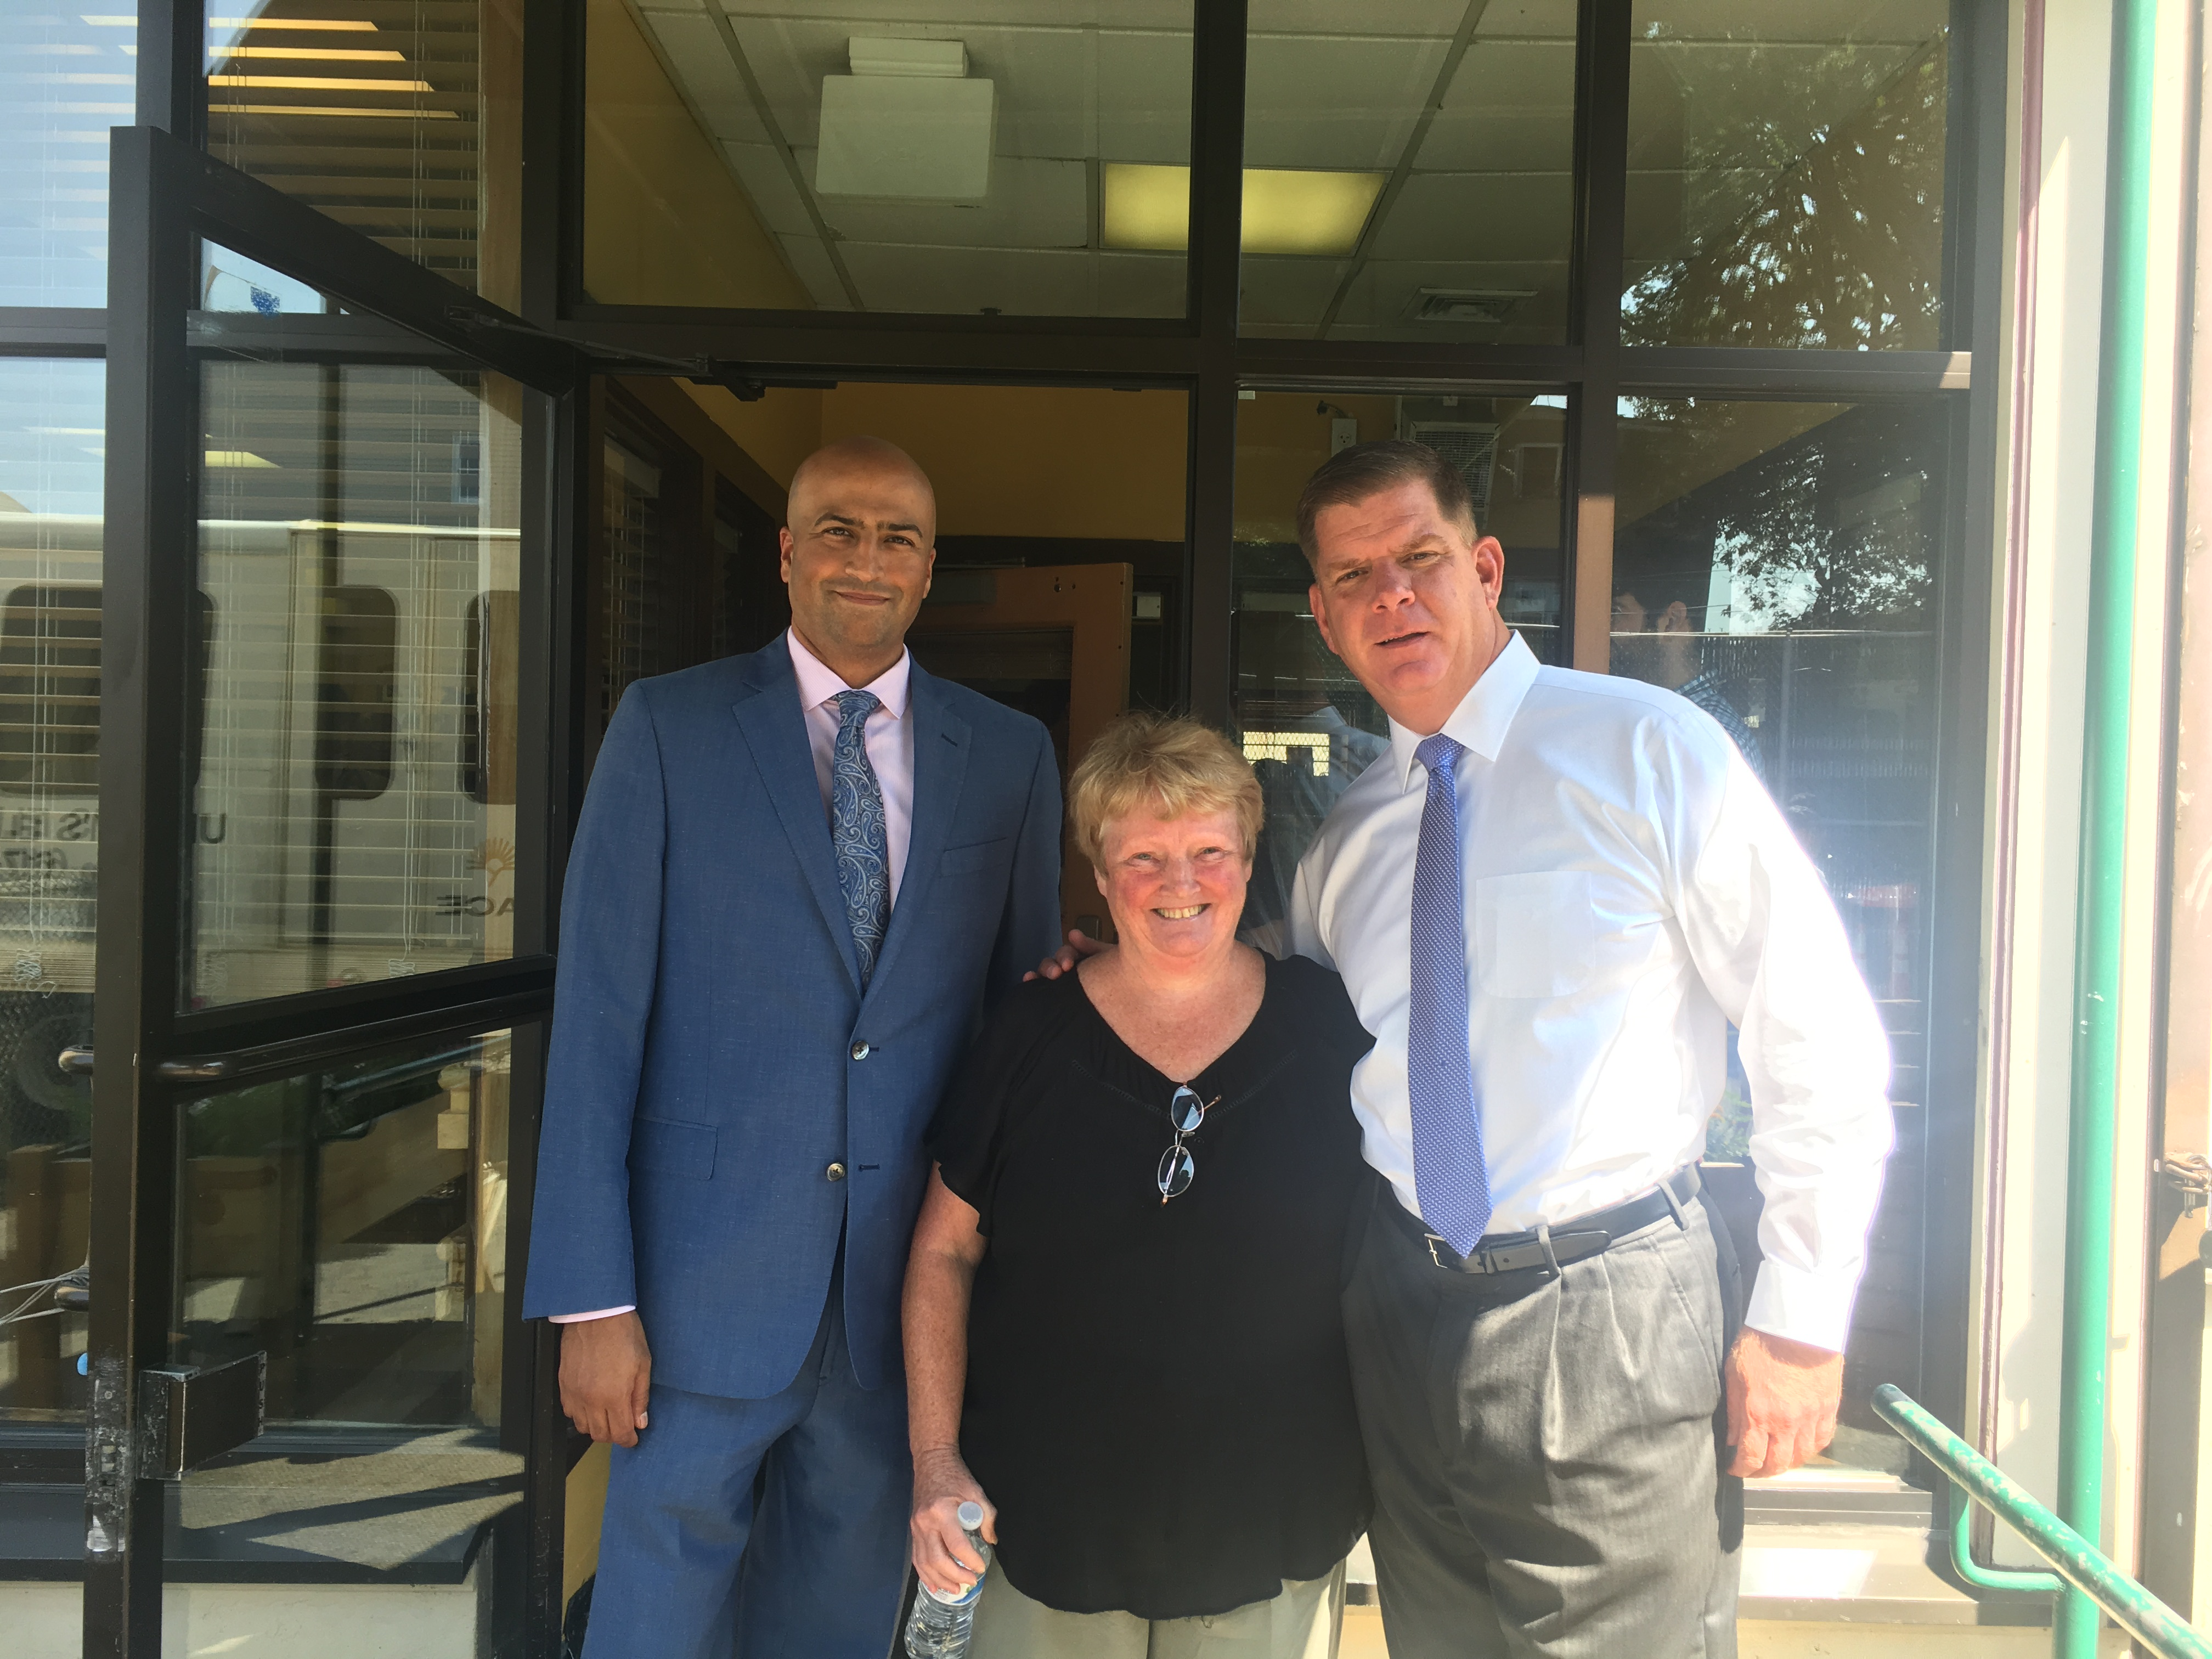 Mayor with CEO, Jay Trivedi and Margaret Leahy- Wirth, President of UCHC Board of Directors